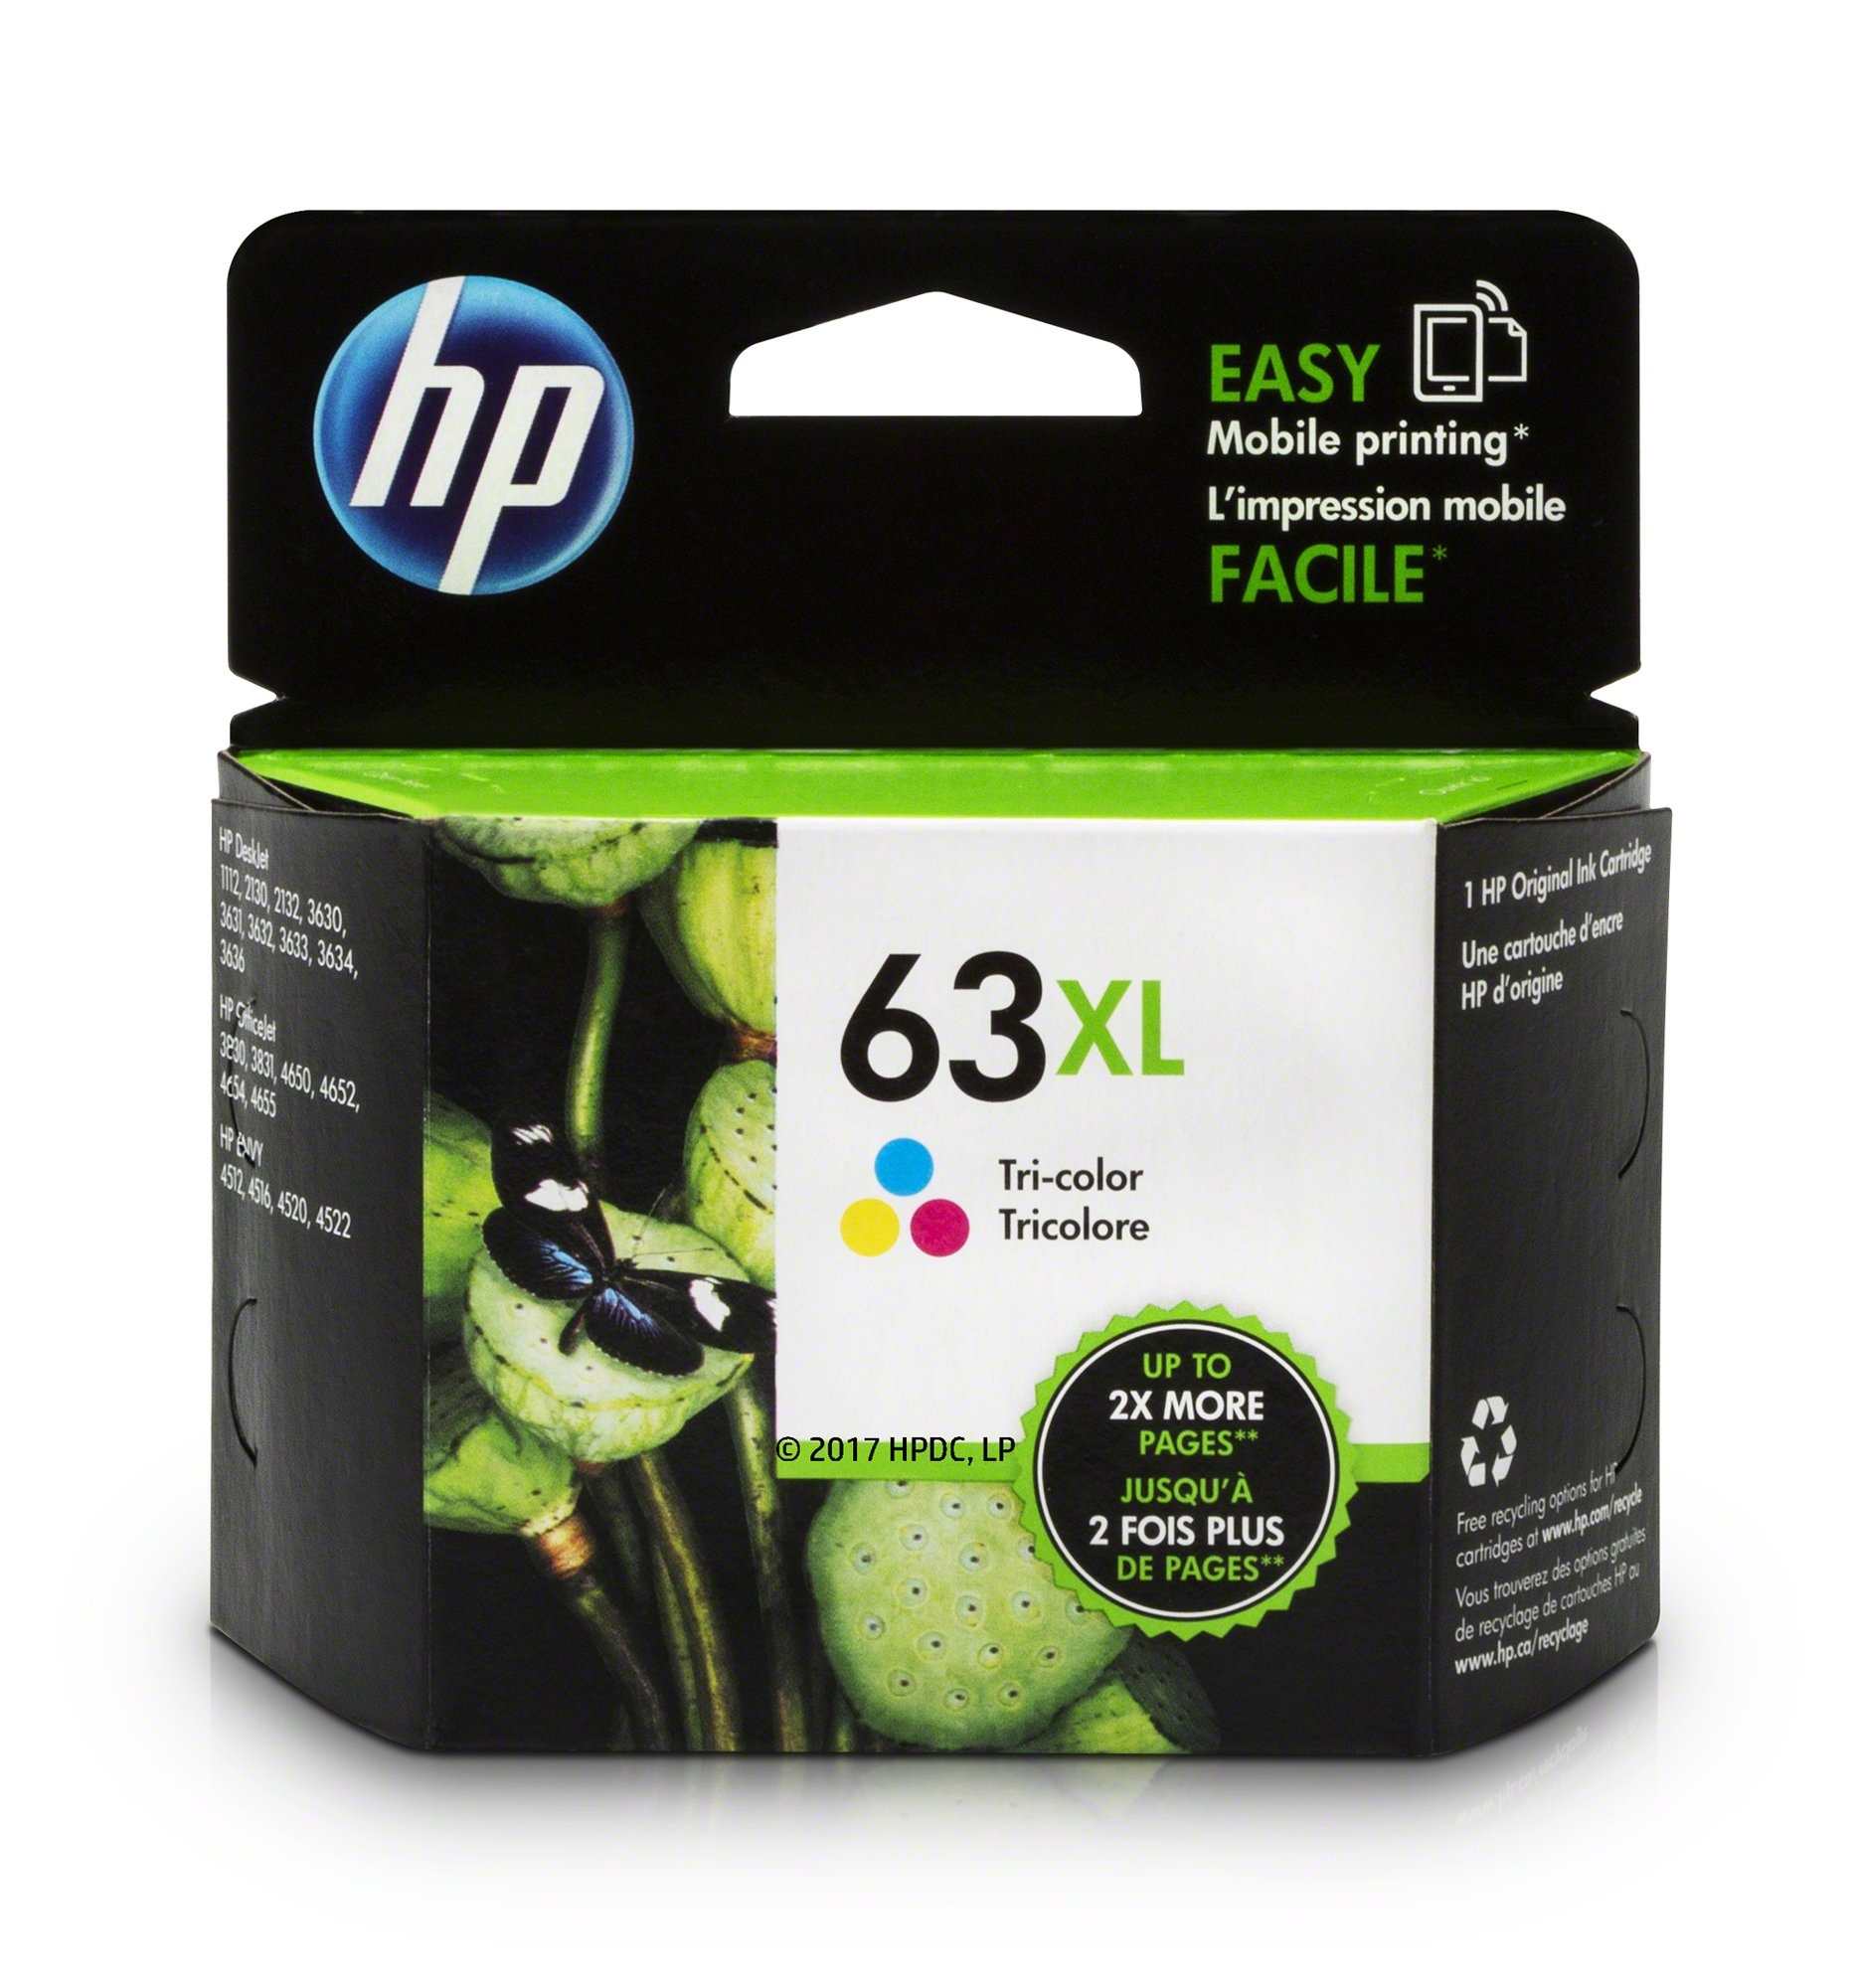 HP 63XL Tri-color High Yield Original Ink Cartridge (F6U63AN) for HP Deskjet 1112 2130 2132 3630 3632 3633 3634 3636 3637 HP ENVY 4512 4513 4520 4523 4524 HP Officejet 3830 3831 3833 4650 4652 4654 4655